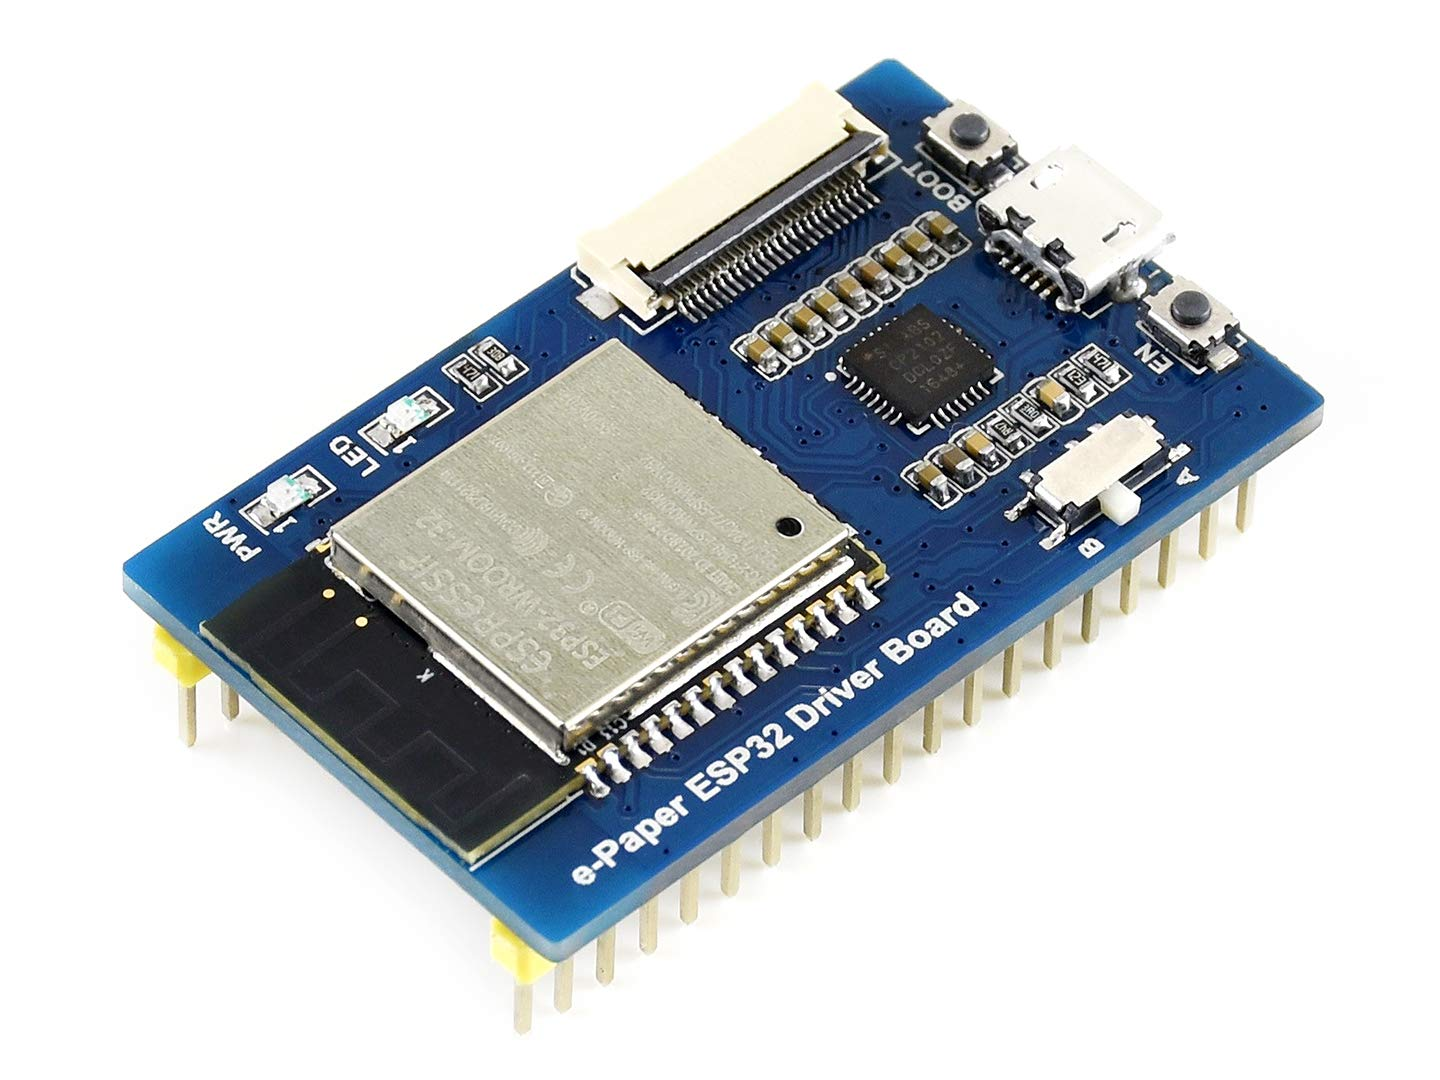 Waveshare Universal e-Paper Driver Board with WiFi and Bluetooth SoC ESP32 onboard Supports Various Waveshare SPI e-Paper raw Panels